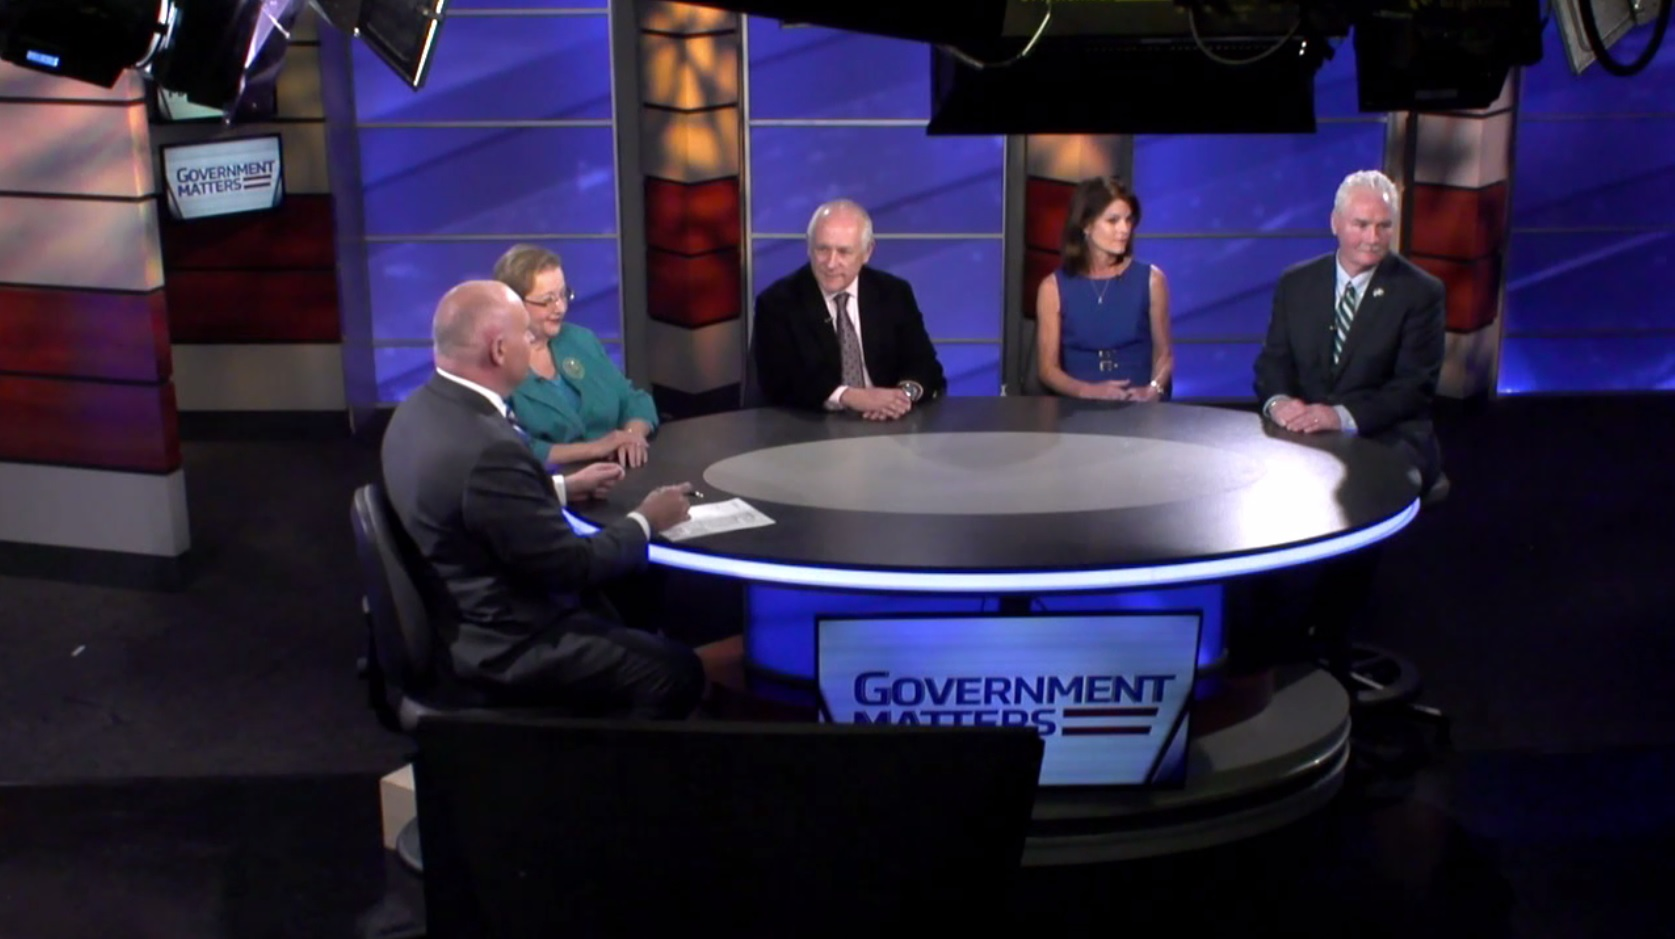 Government Matters (Full Show) – January 21, 2018